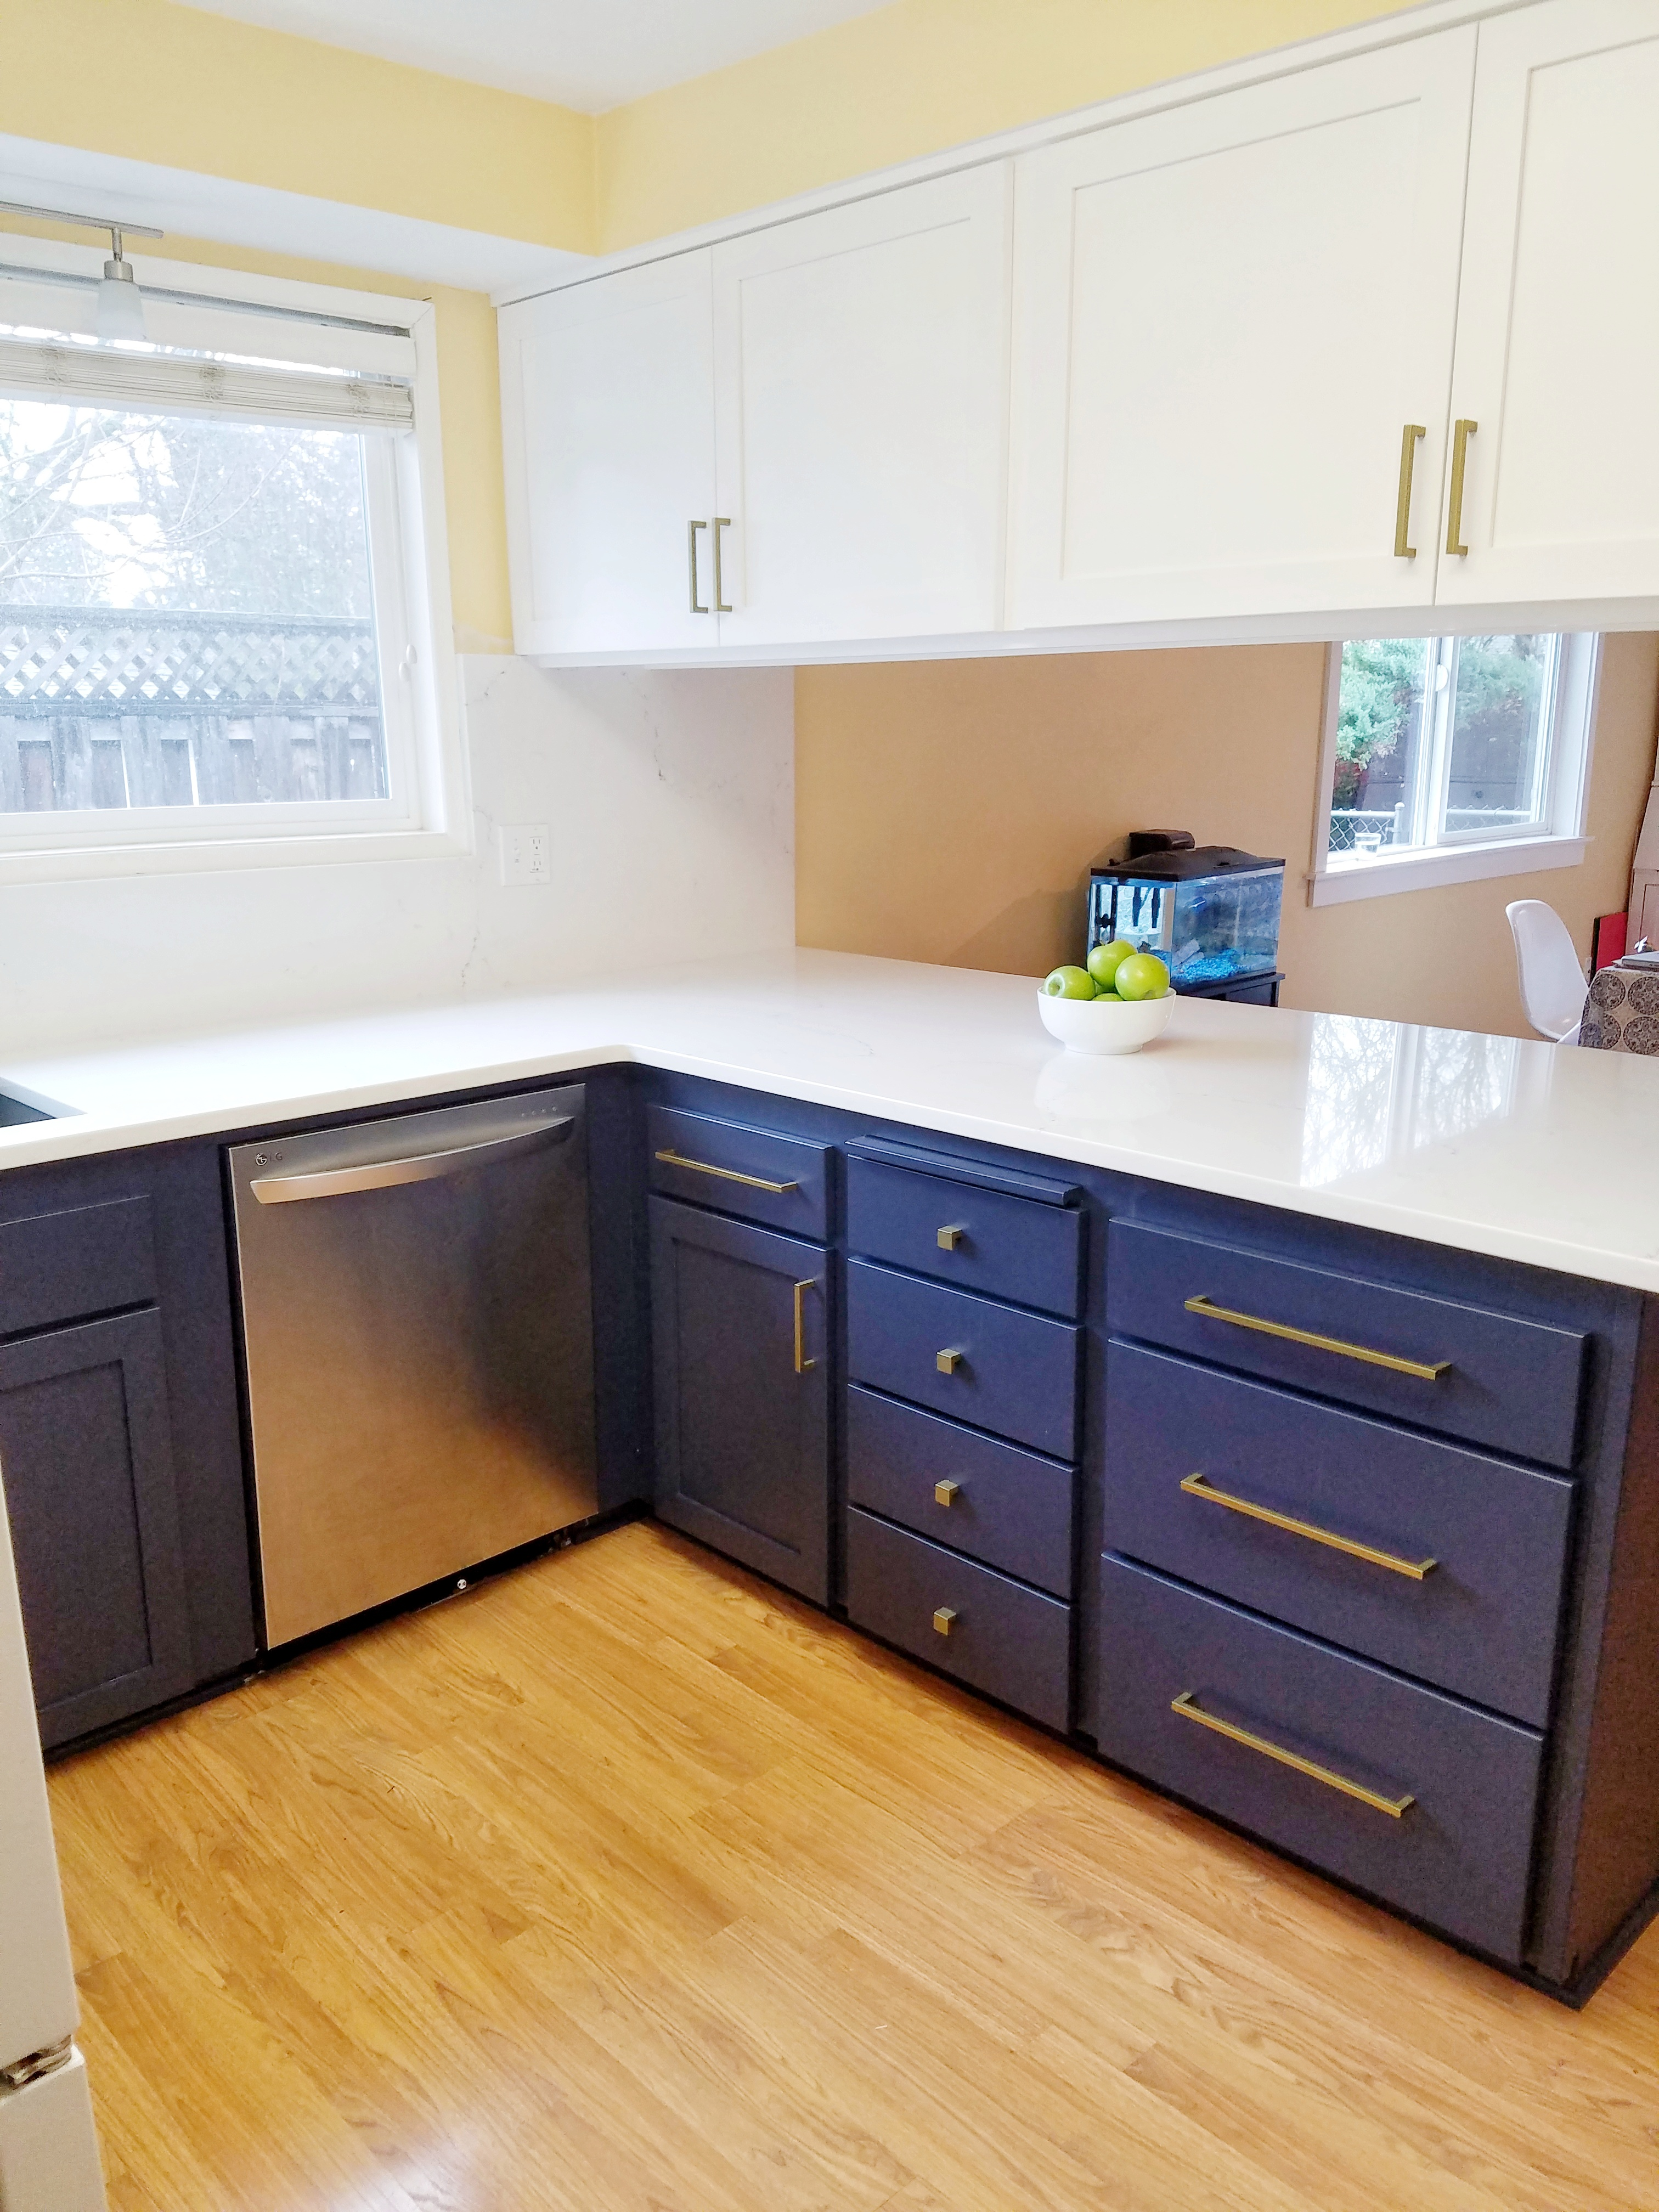 Dark lower, white upper cabinets, new counter